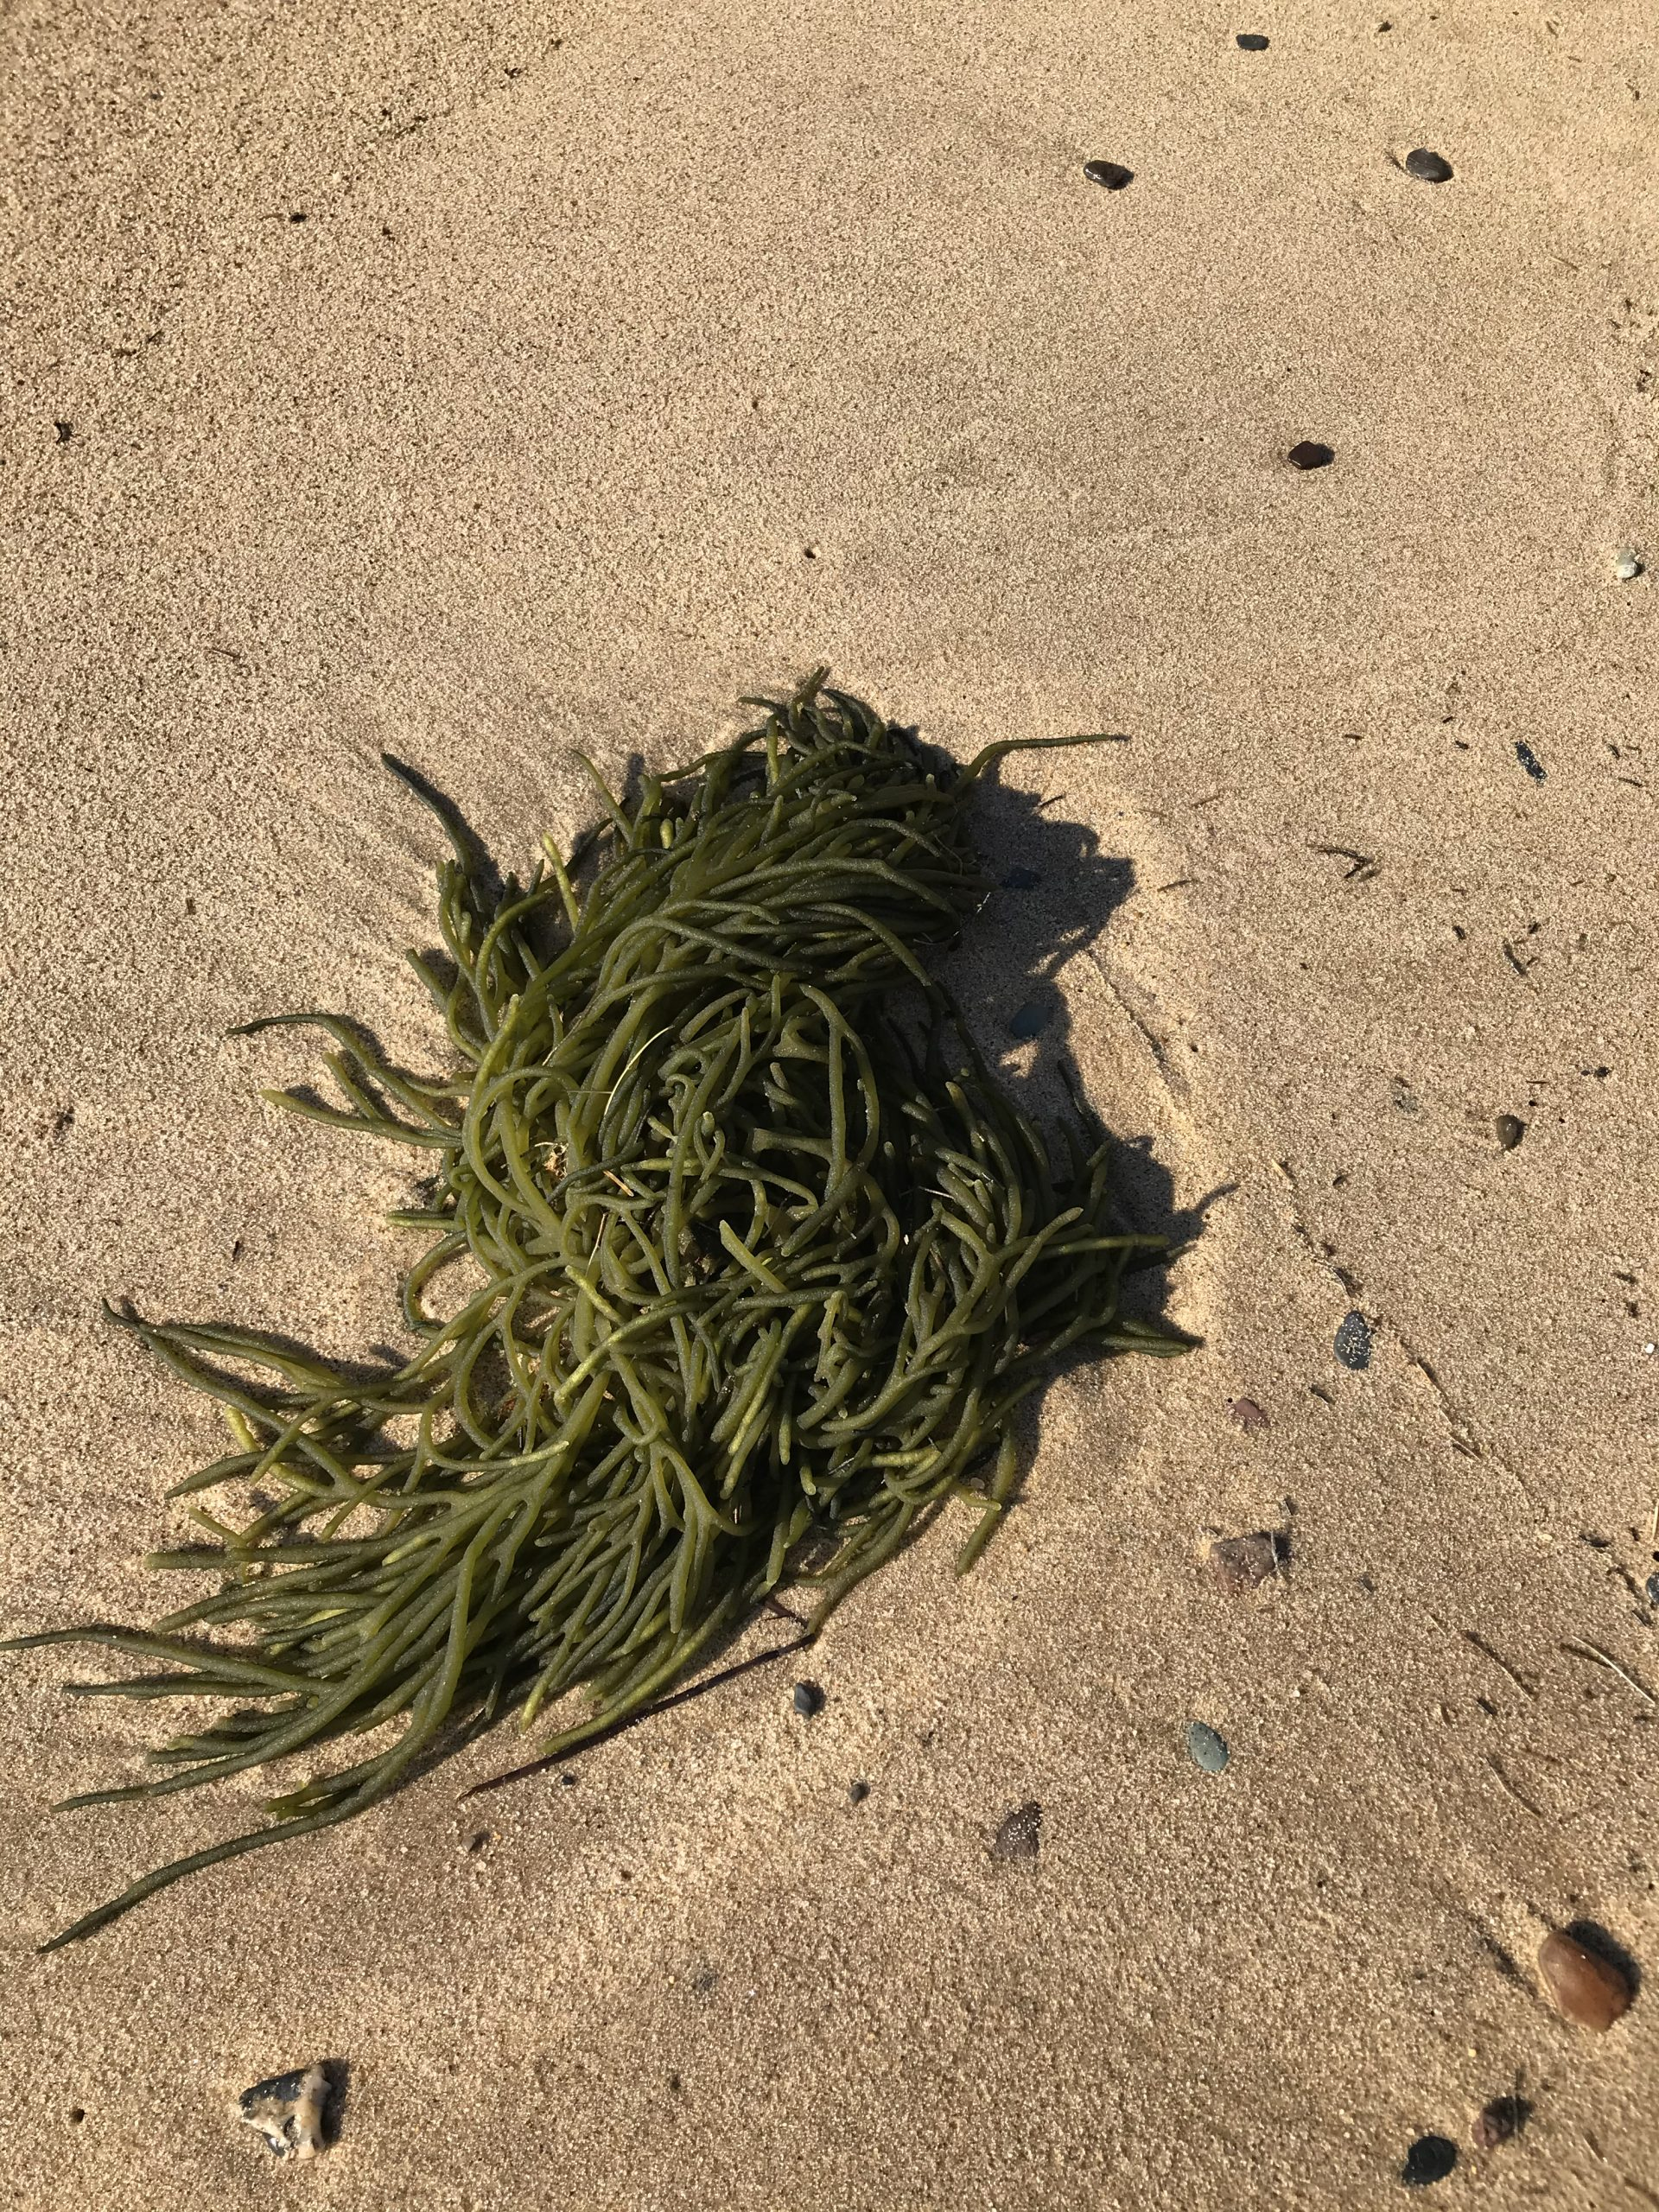 Some seaweed